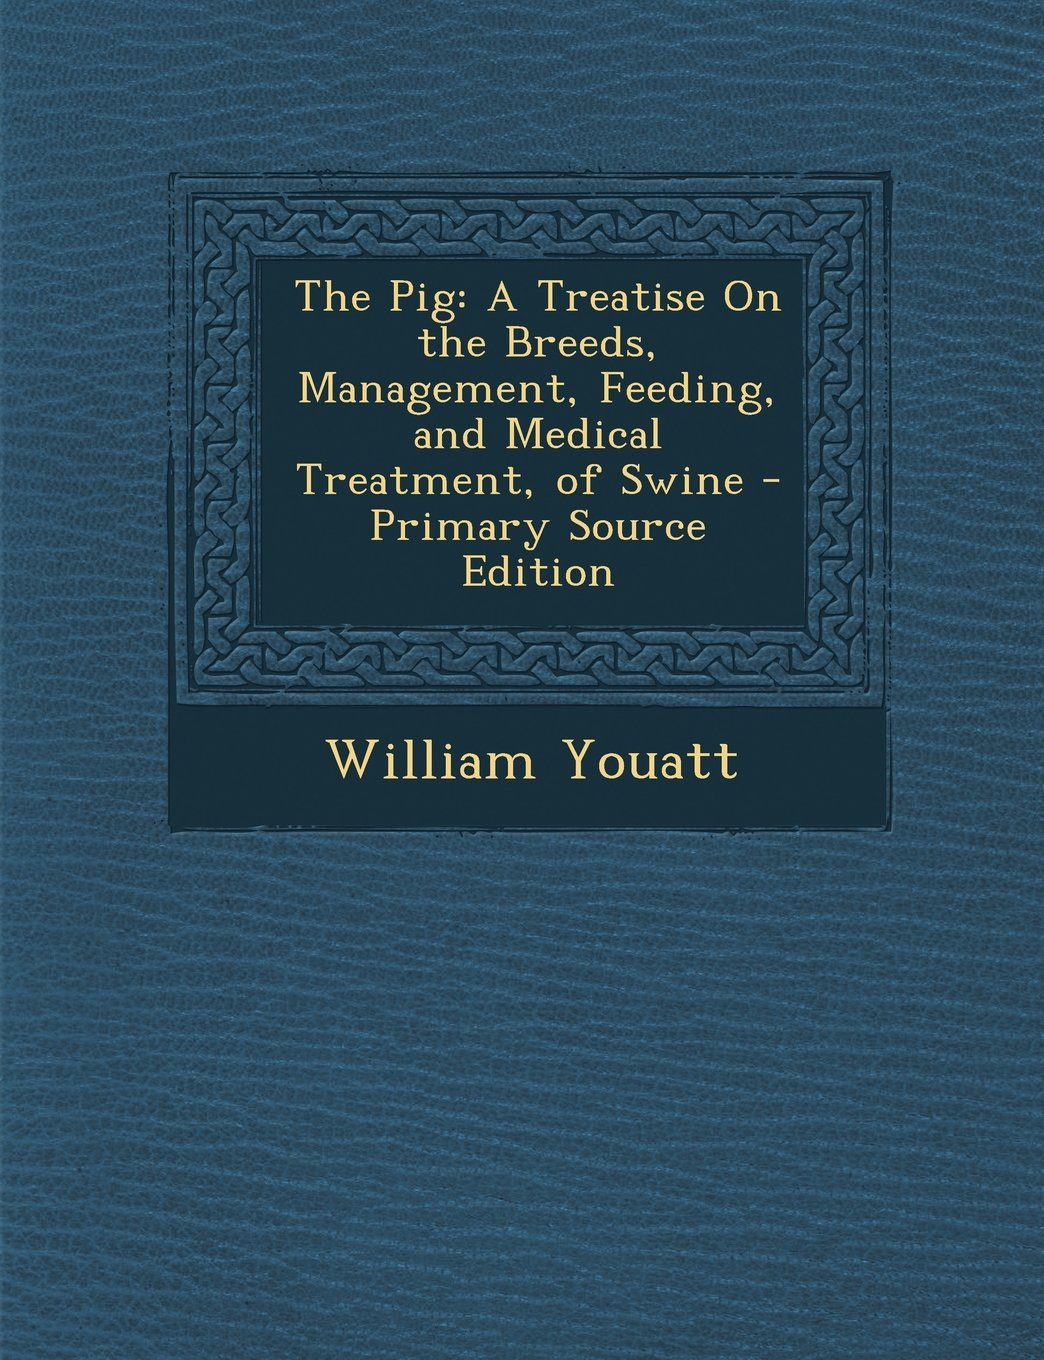 The Pig: A Treatise On the Breeds, Management, Feeding, and Medical Treatment, of Swine pdf epub